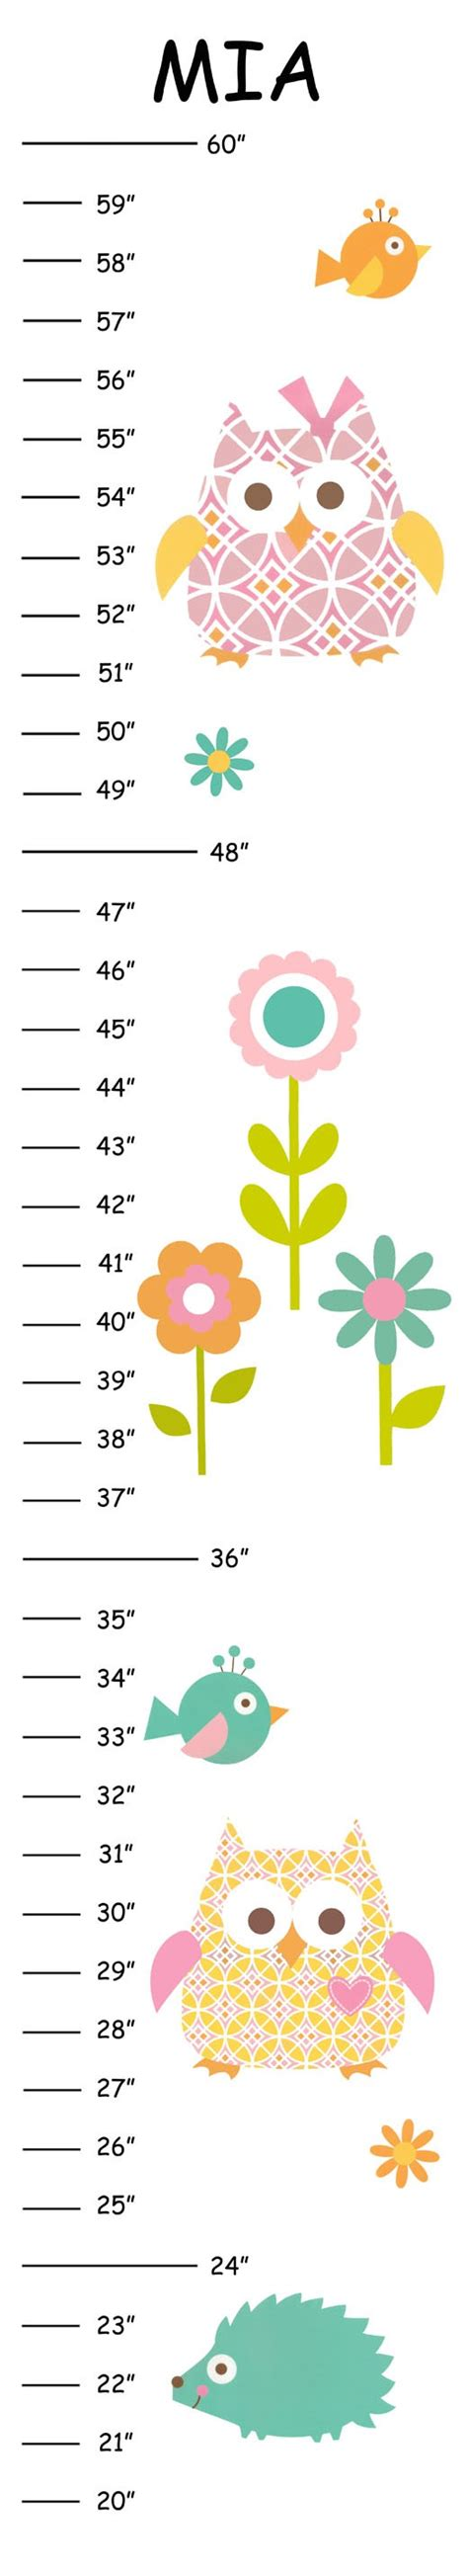 printable children s growth chart items similar to personalized happy tree owl canvas growth